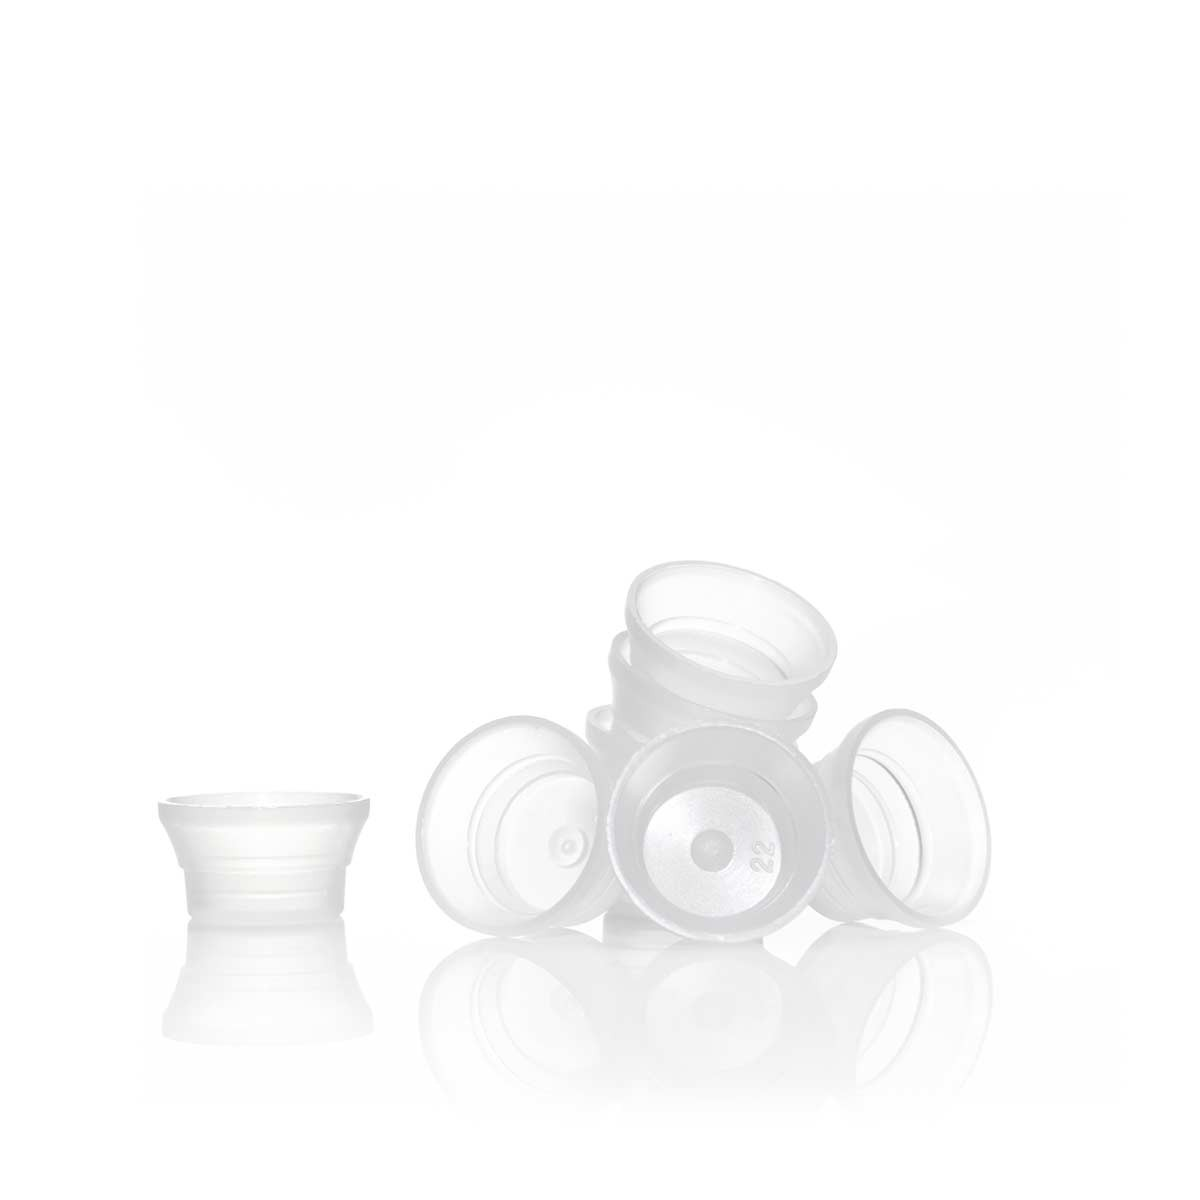 Micro Cups (Pack of 100)